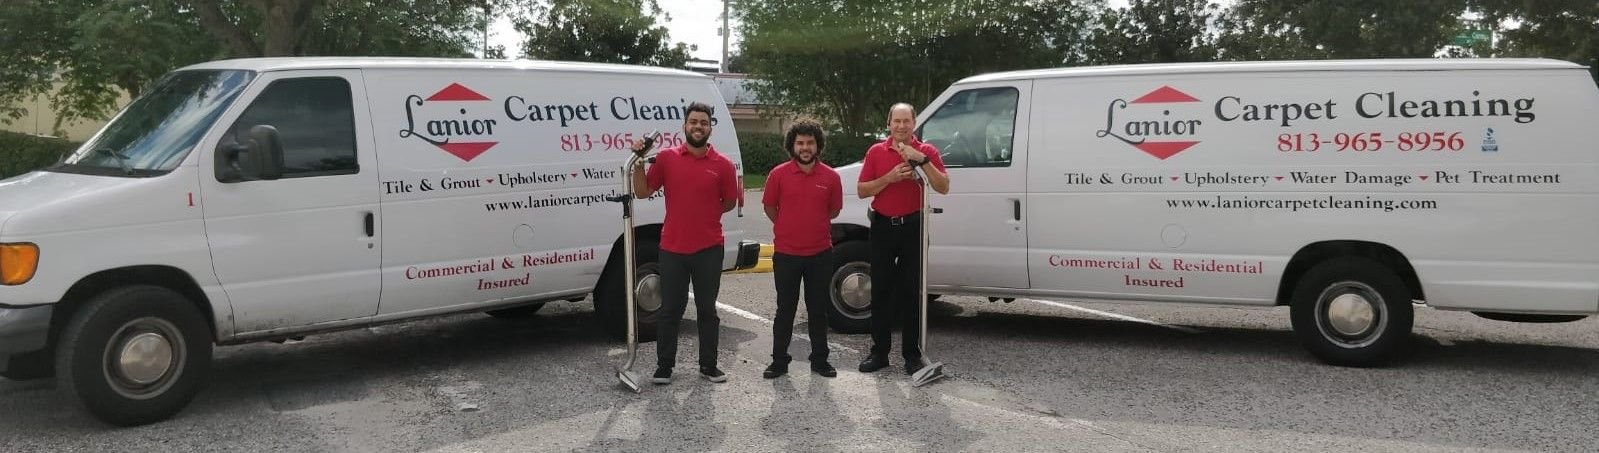 Carpet-cleaning-contractor